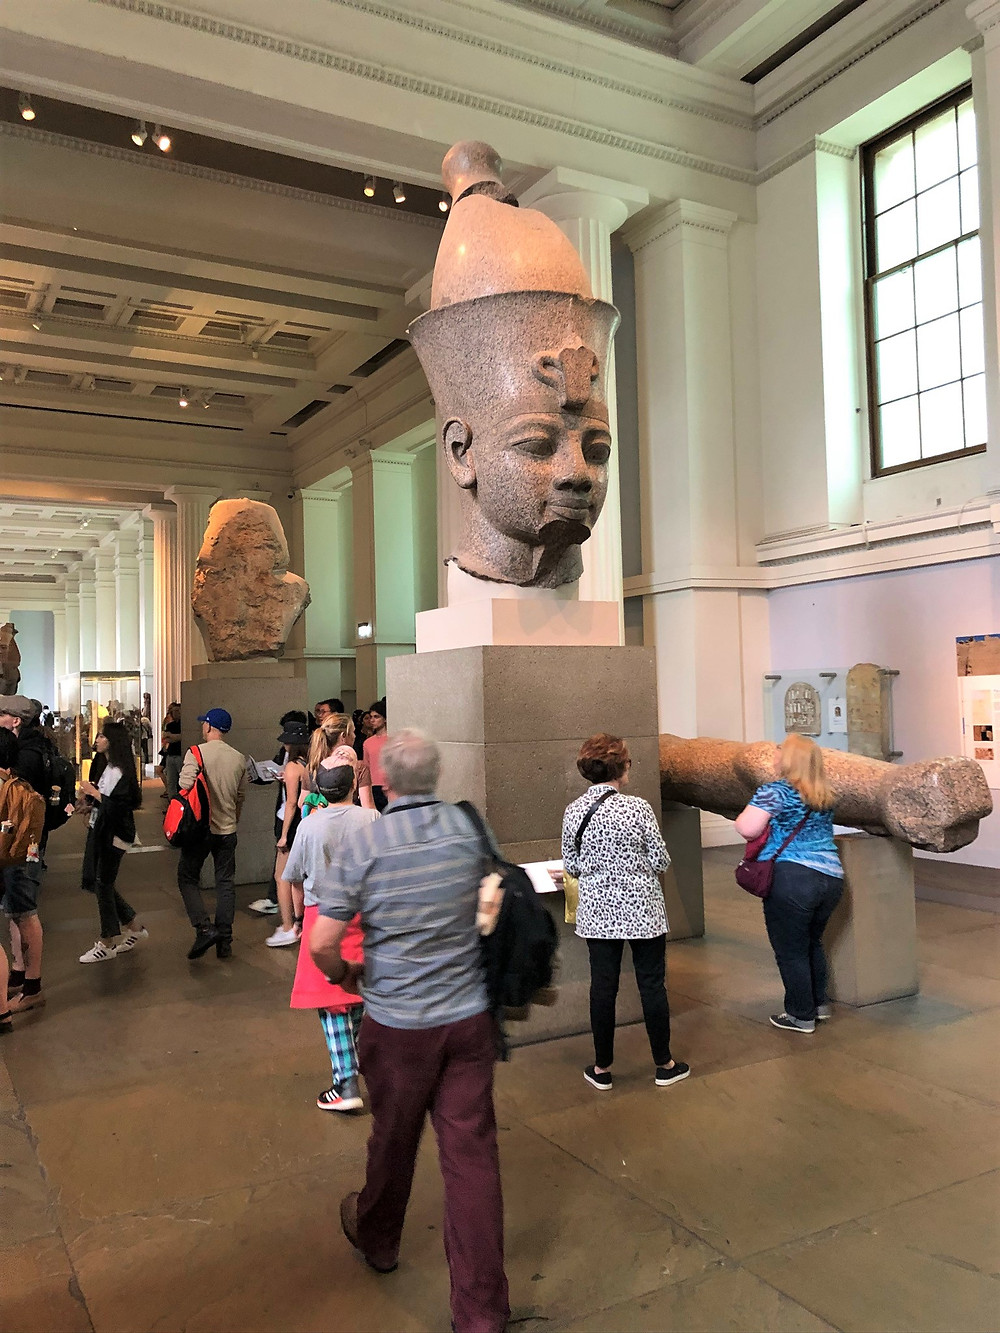 The colossal red granite statue of Amenhotep III in the British Museum in London.  9 feet tall weighing 14500 pounds